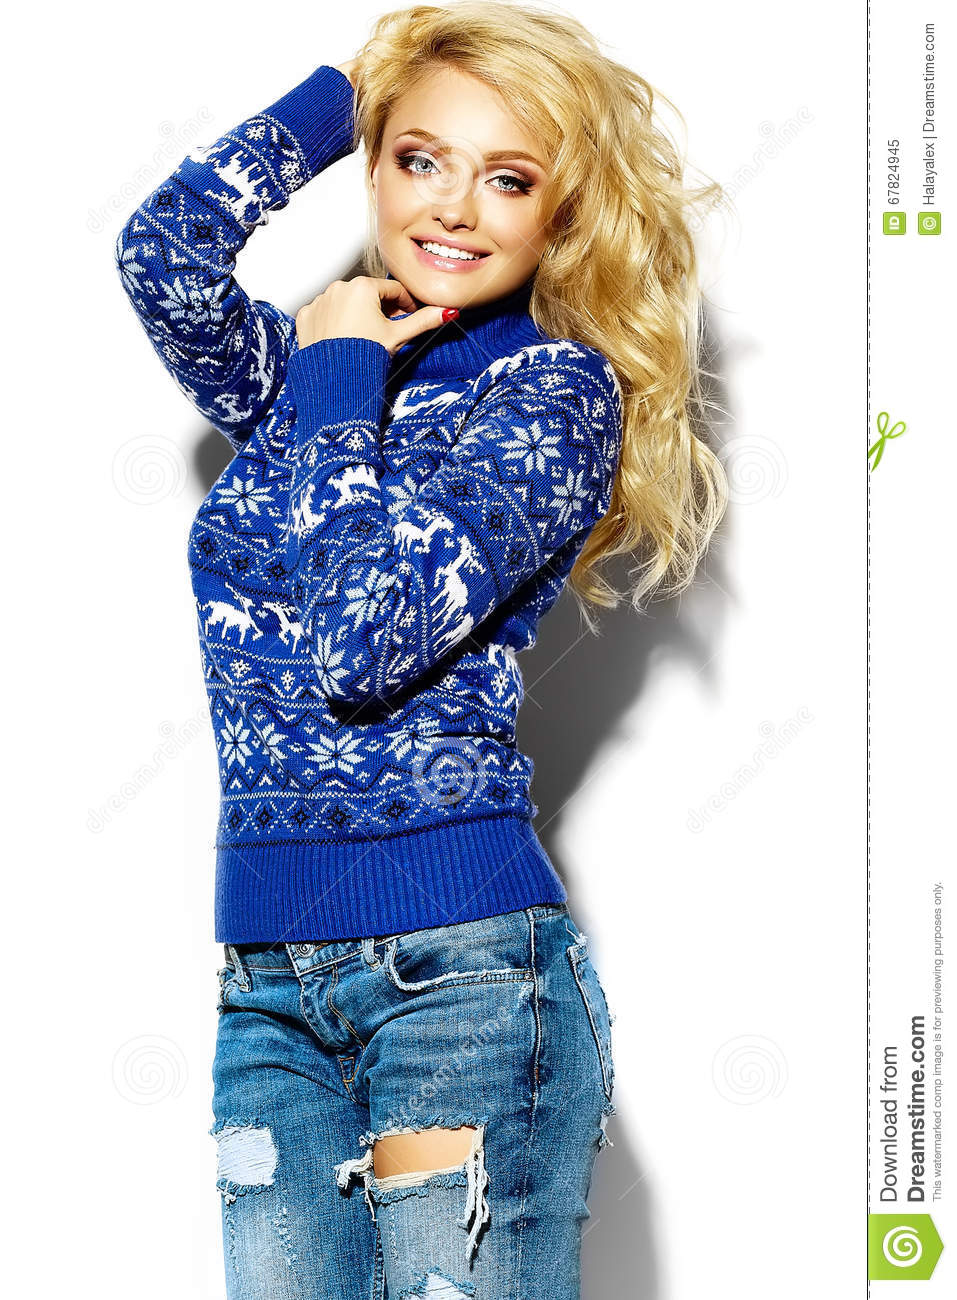 Happy Sweet Cute Smiling Blonde Woman In Blue Sweater Stock Image ...